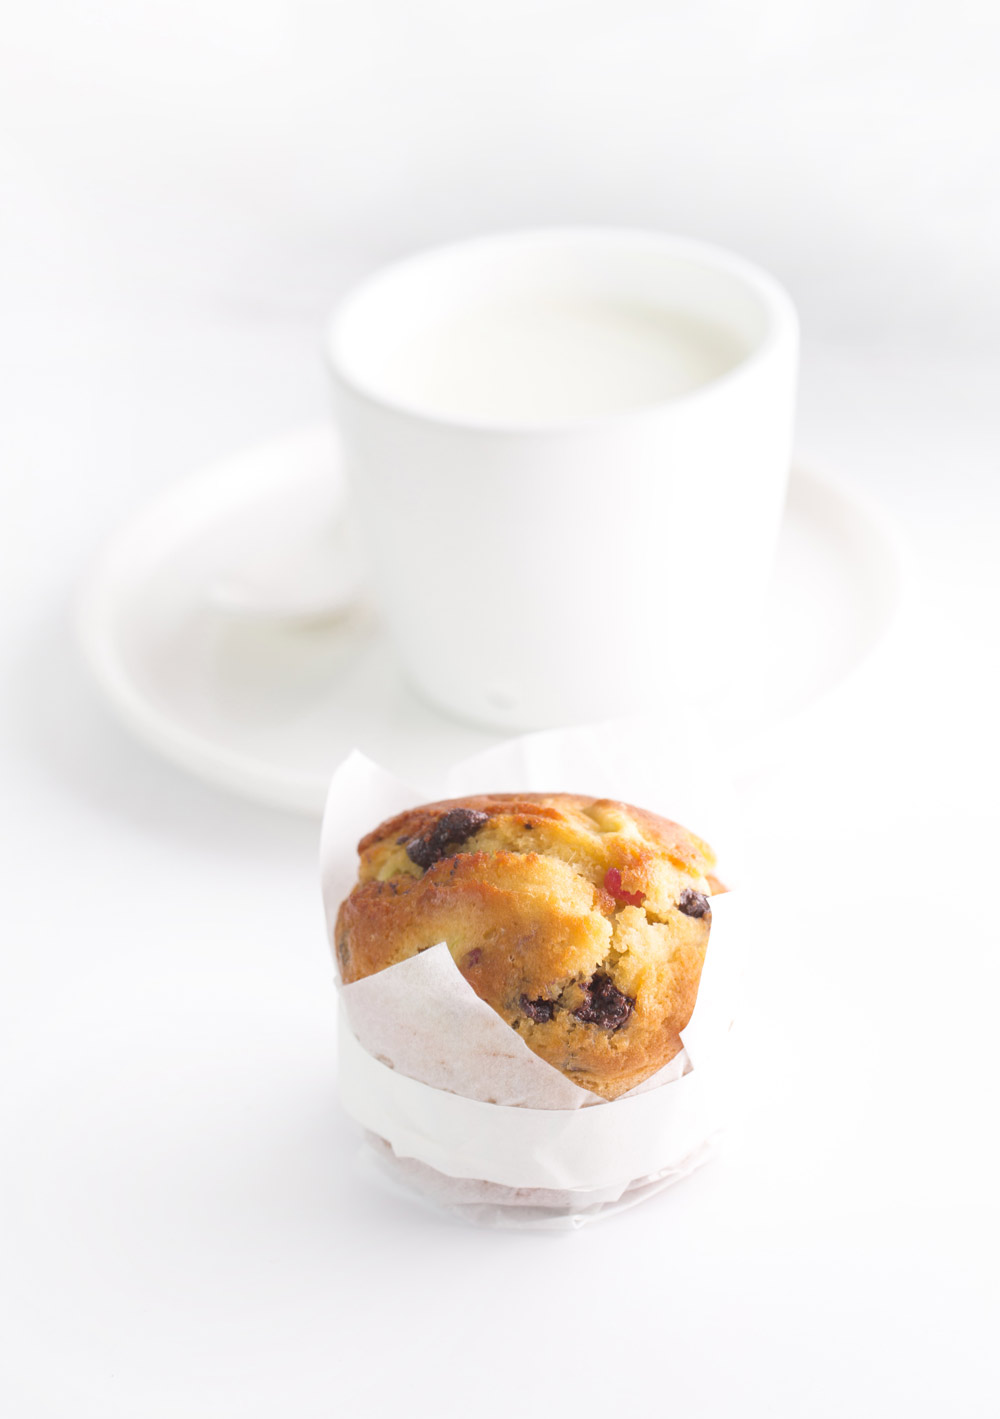 Blanccoco_recette_muffin_rhubarbe_chocolat_stevia-6